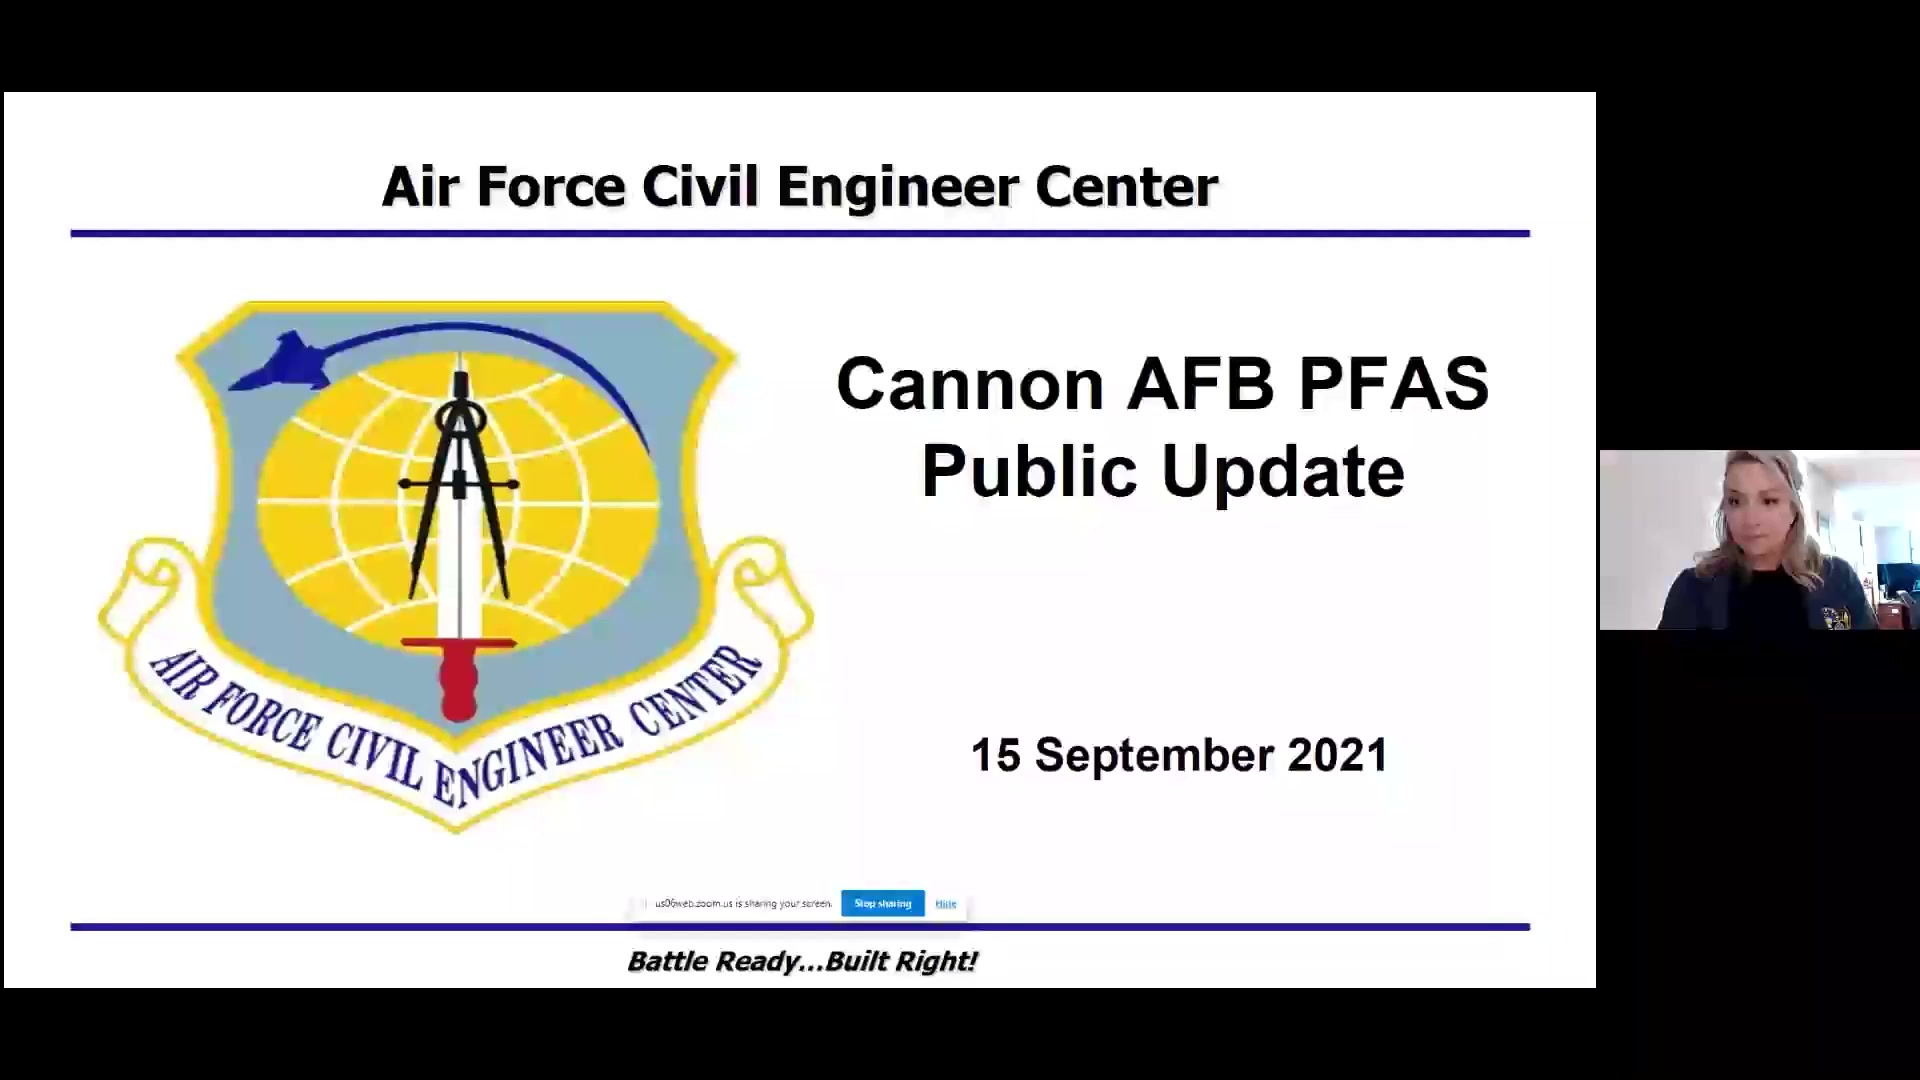 The 27th Special Operations Wing and the Air Force Civil Engineer Center hosted a virtual public meeting to provide updates to its on-going actions to address Polyfluoroalkyl Substances, identified at Cannon Air Force Base, New Mexico.  This is the third meeting of a planned series of quarterly meetings focused on the Air Force's response to PFAS. AFCEC's environmental experts will be available to answer questions regarding these efforts. The Air Force welcomes and encourages public participation and involvement.